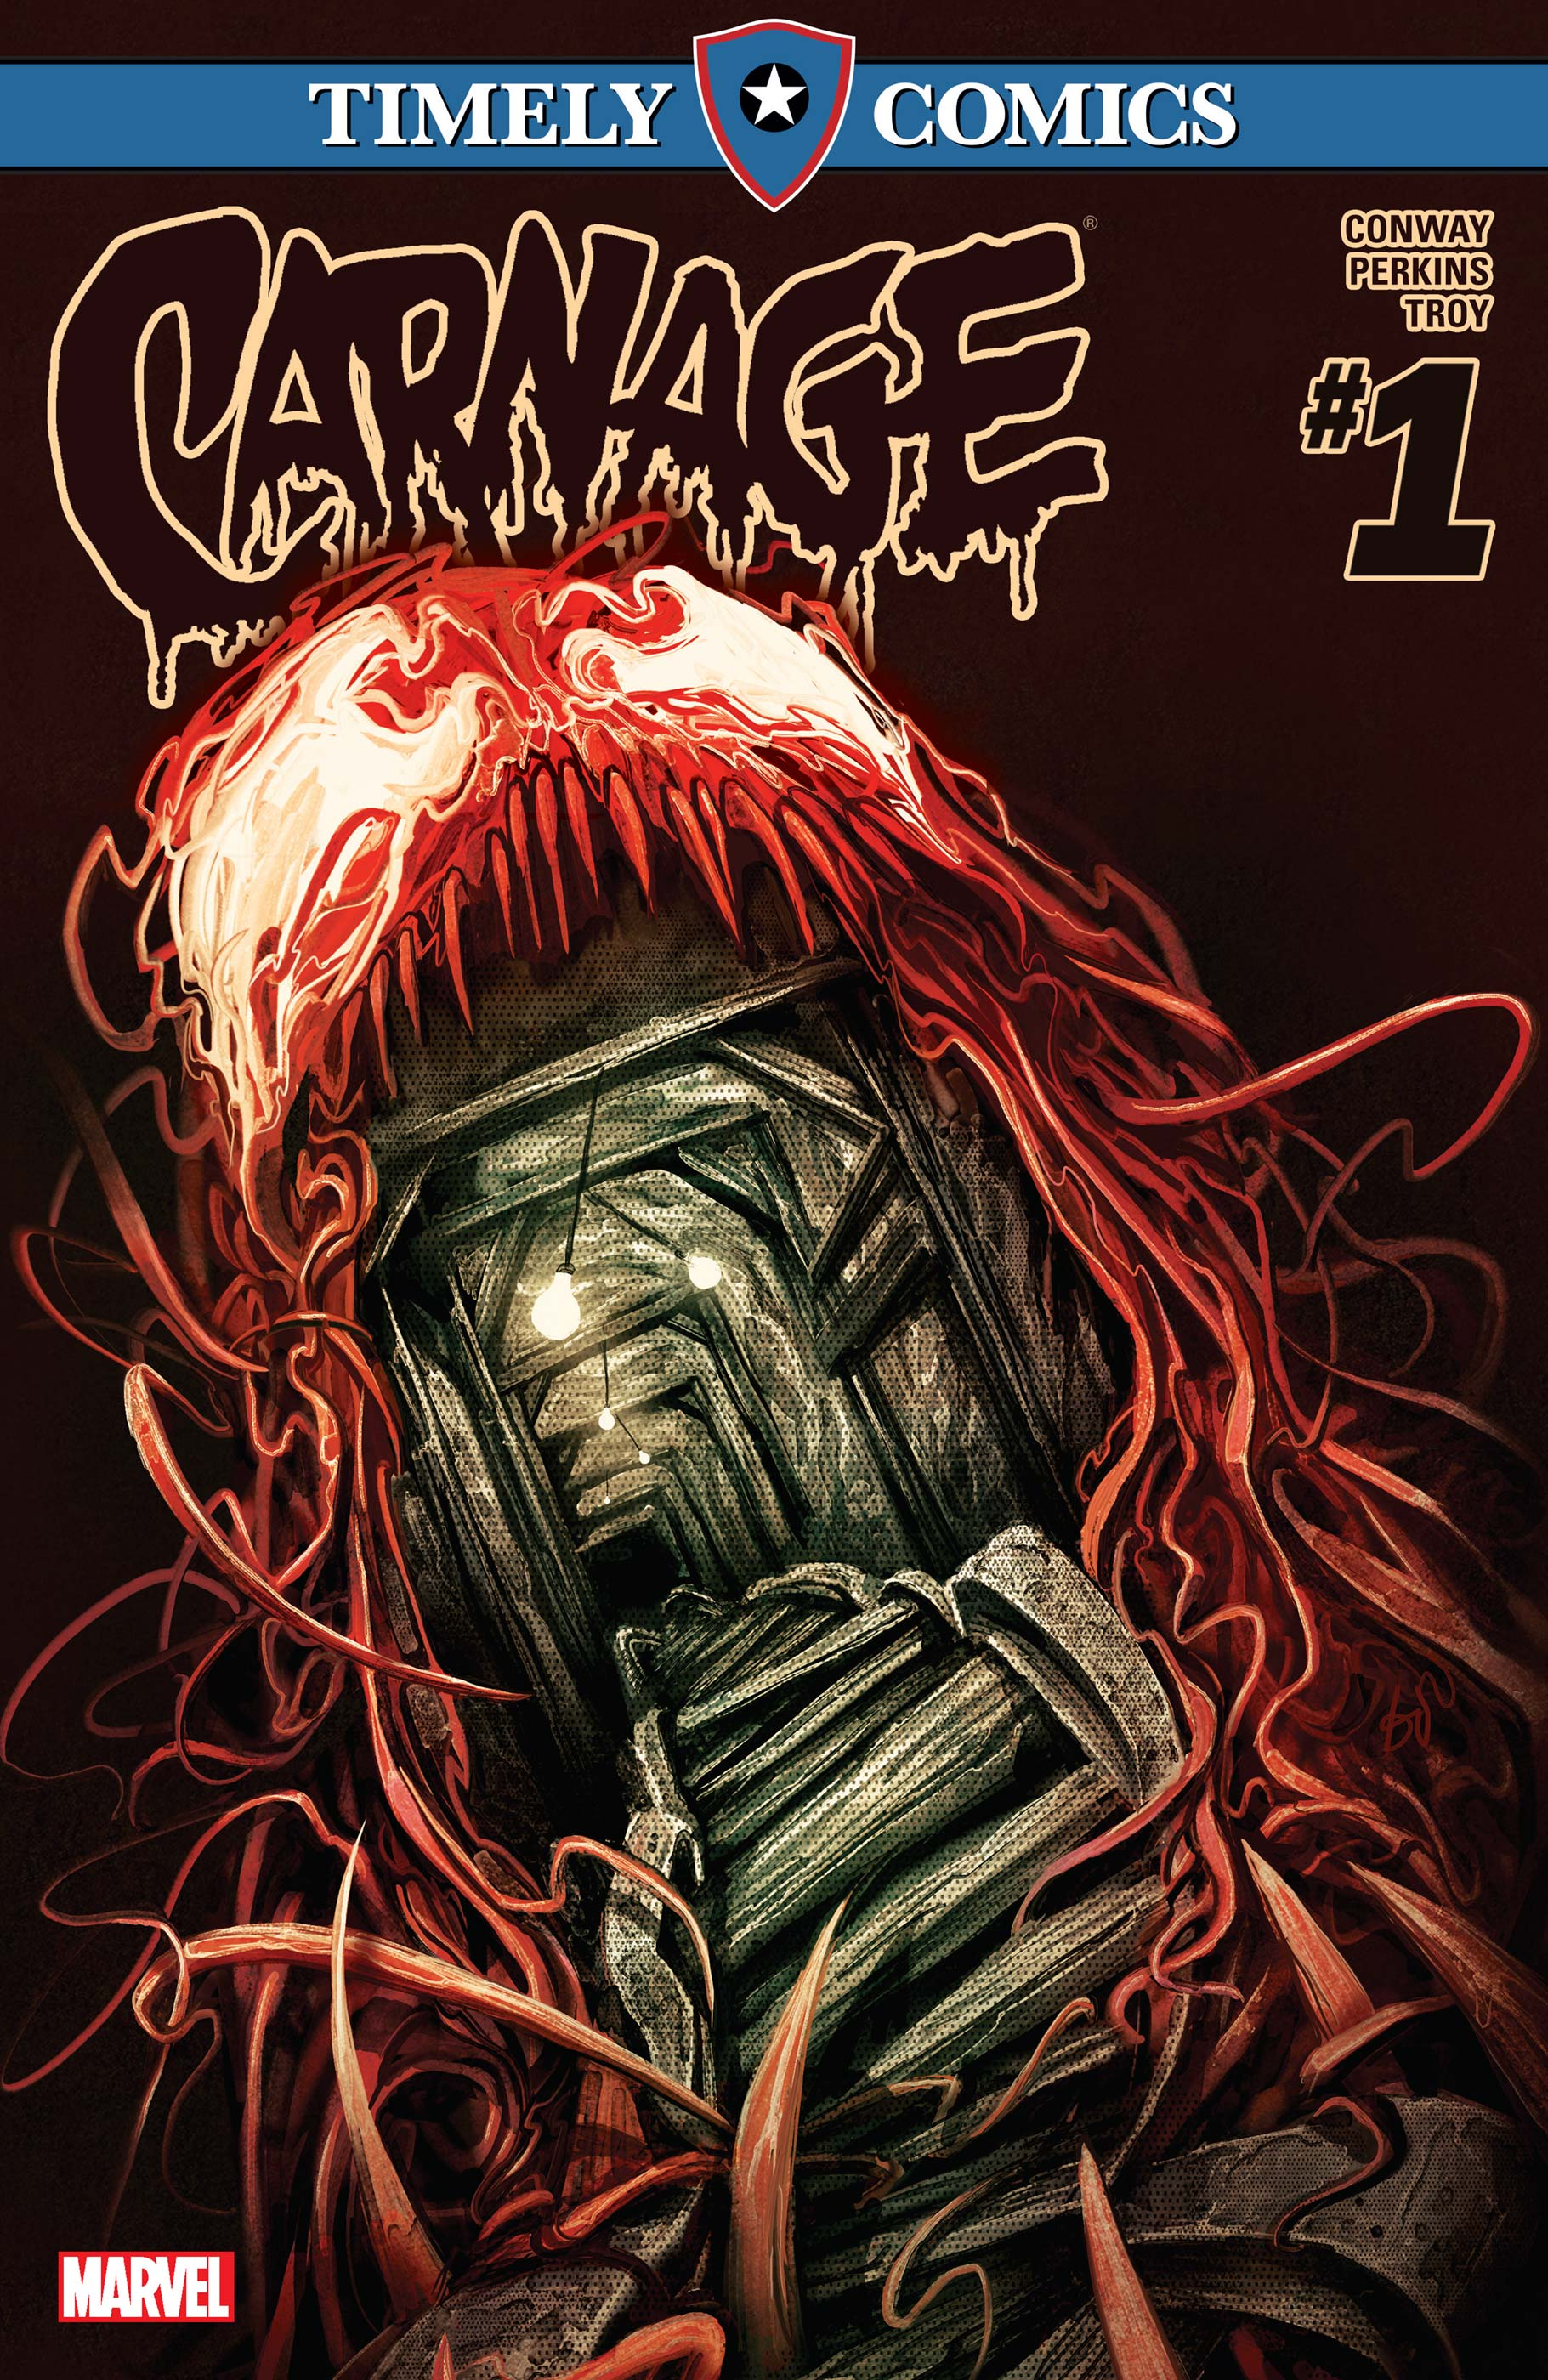 Timely Comics: Carnage Vol 1